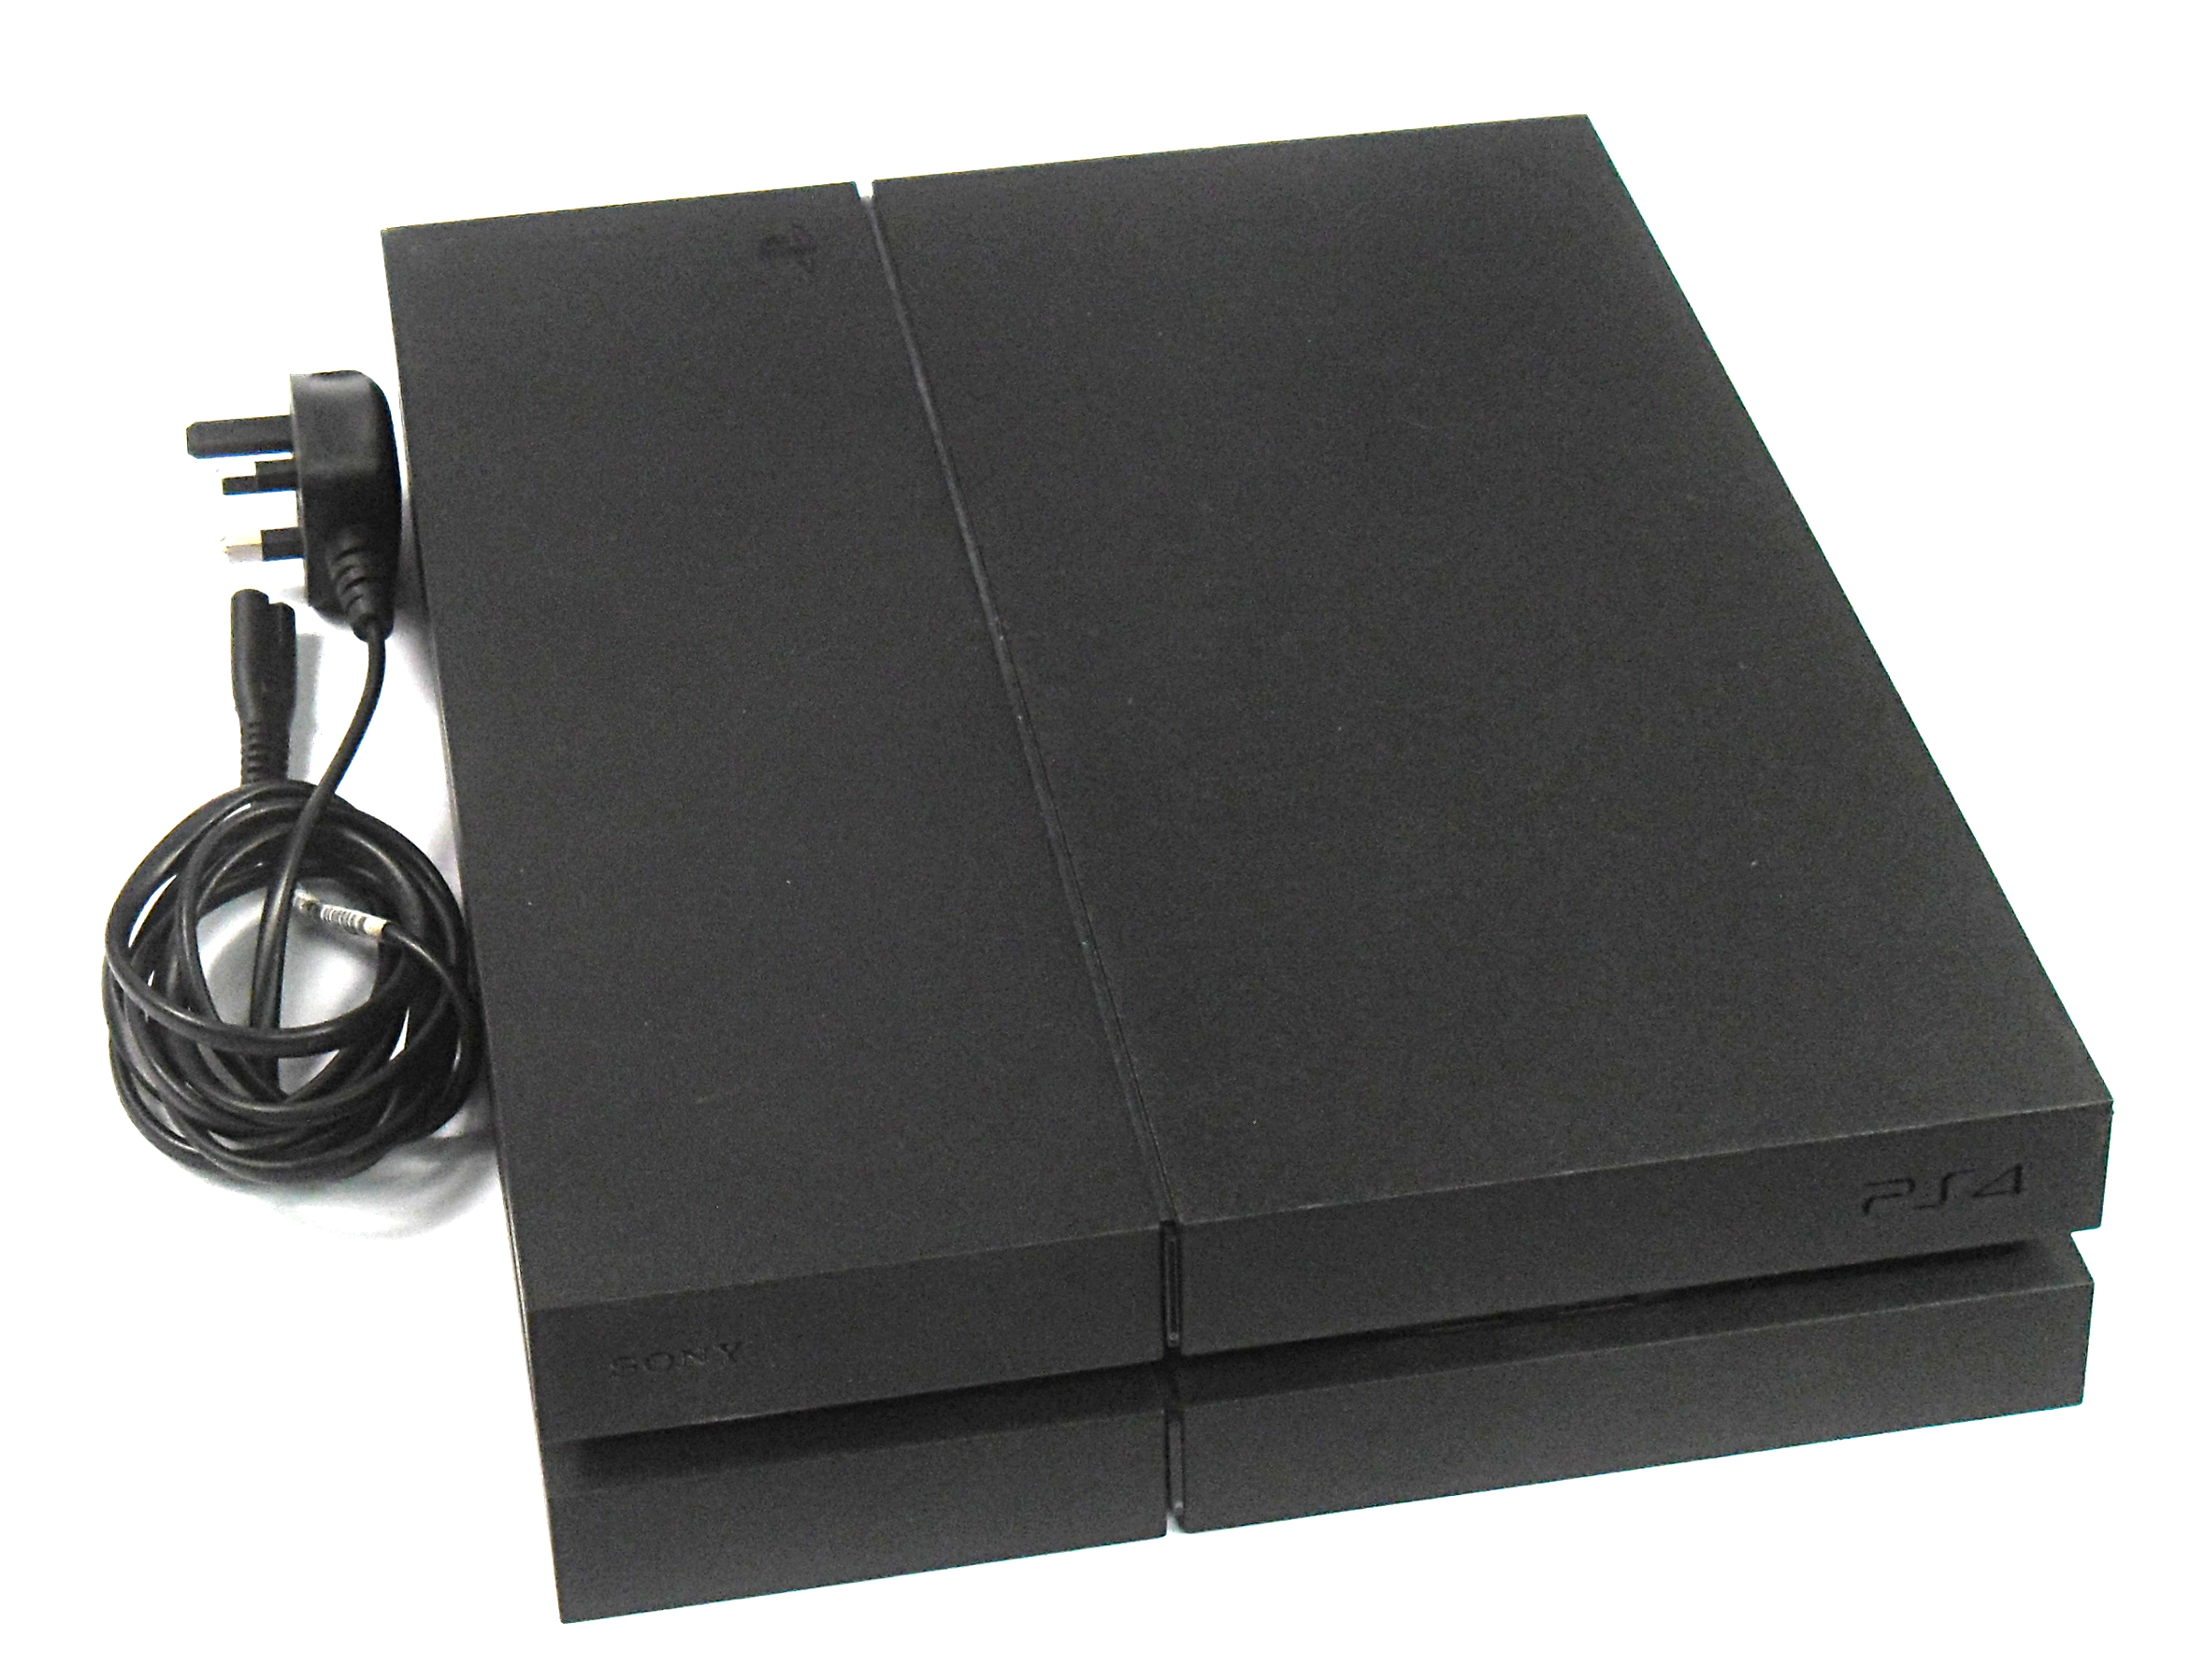 Ps4 Console Parts – Wonderful Image Gallery